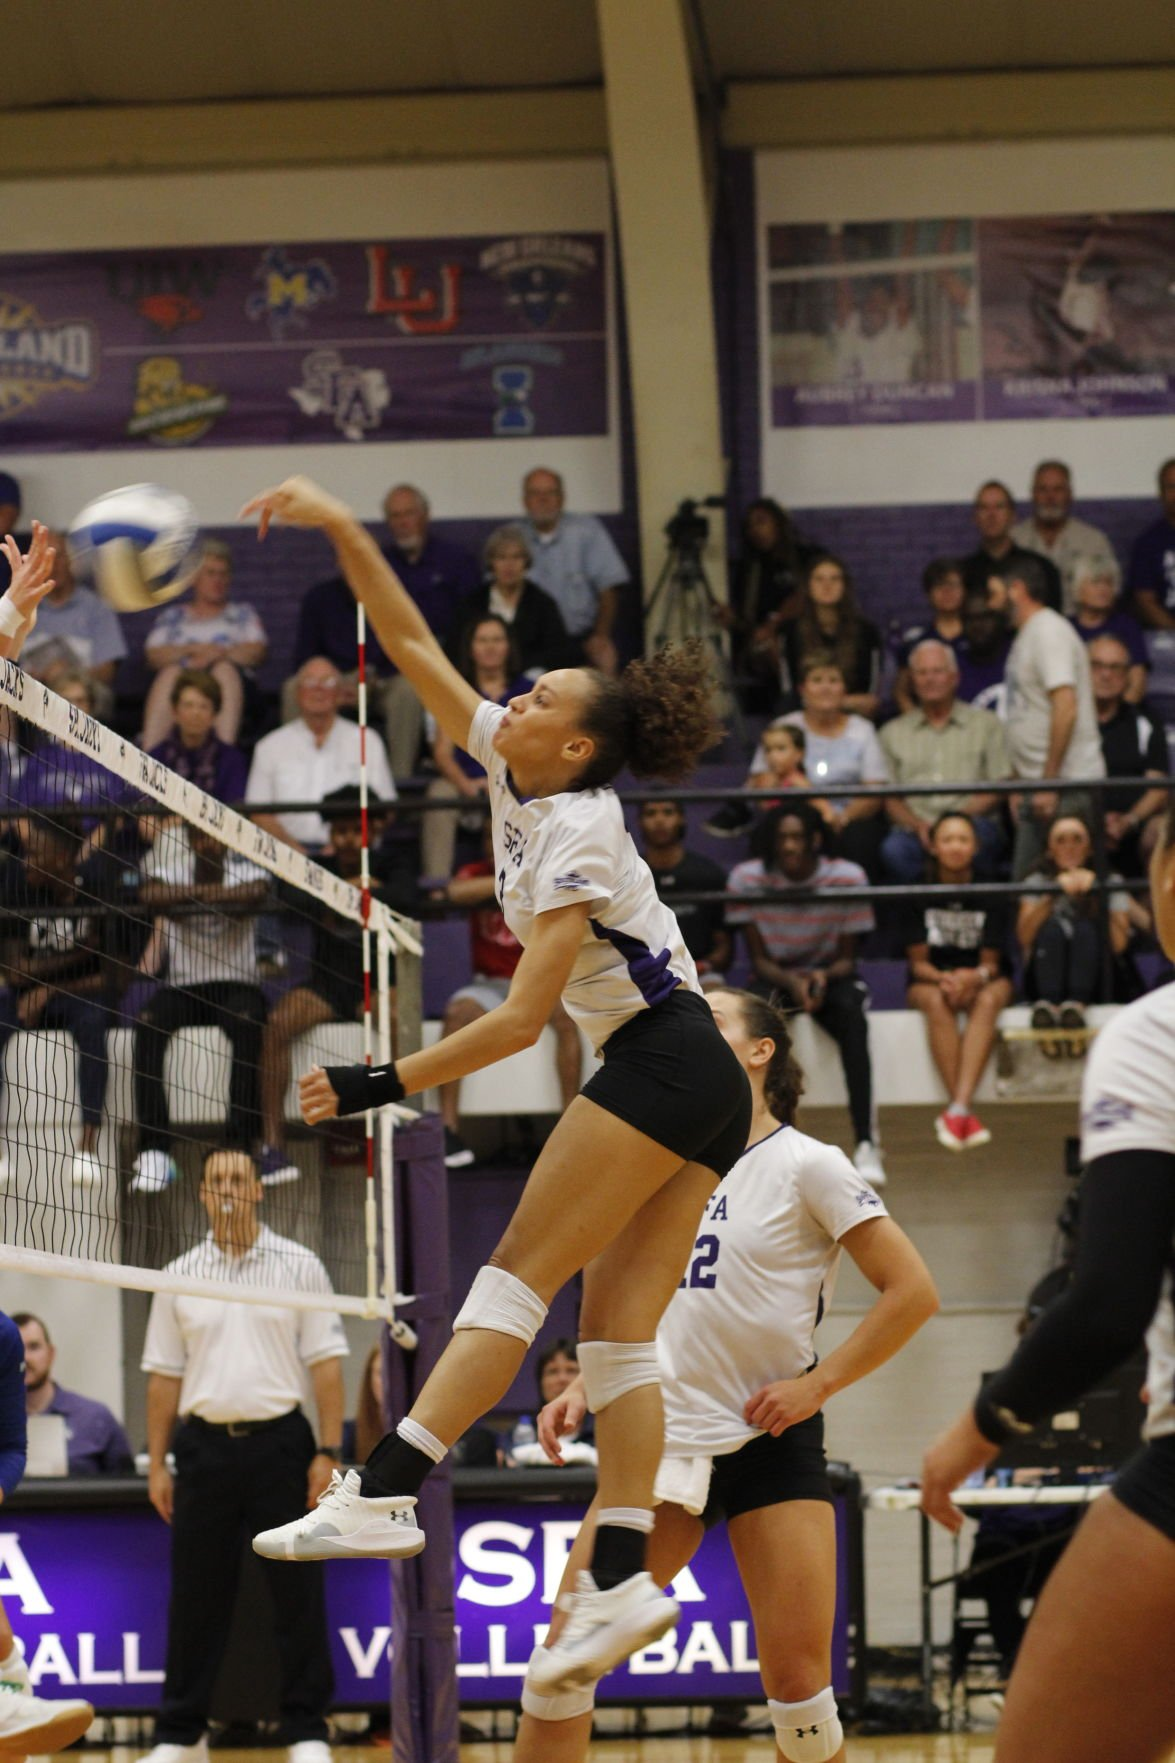 SFA volleyball team to face Lamar, McNeese during conference play after two SLC wins